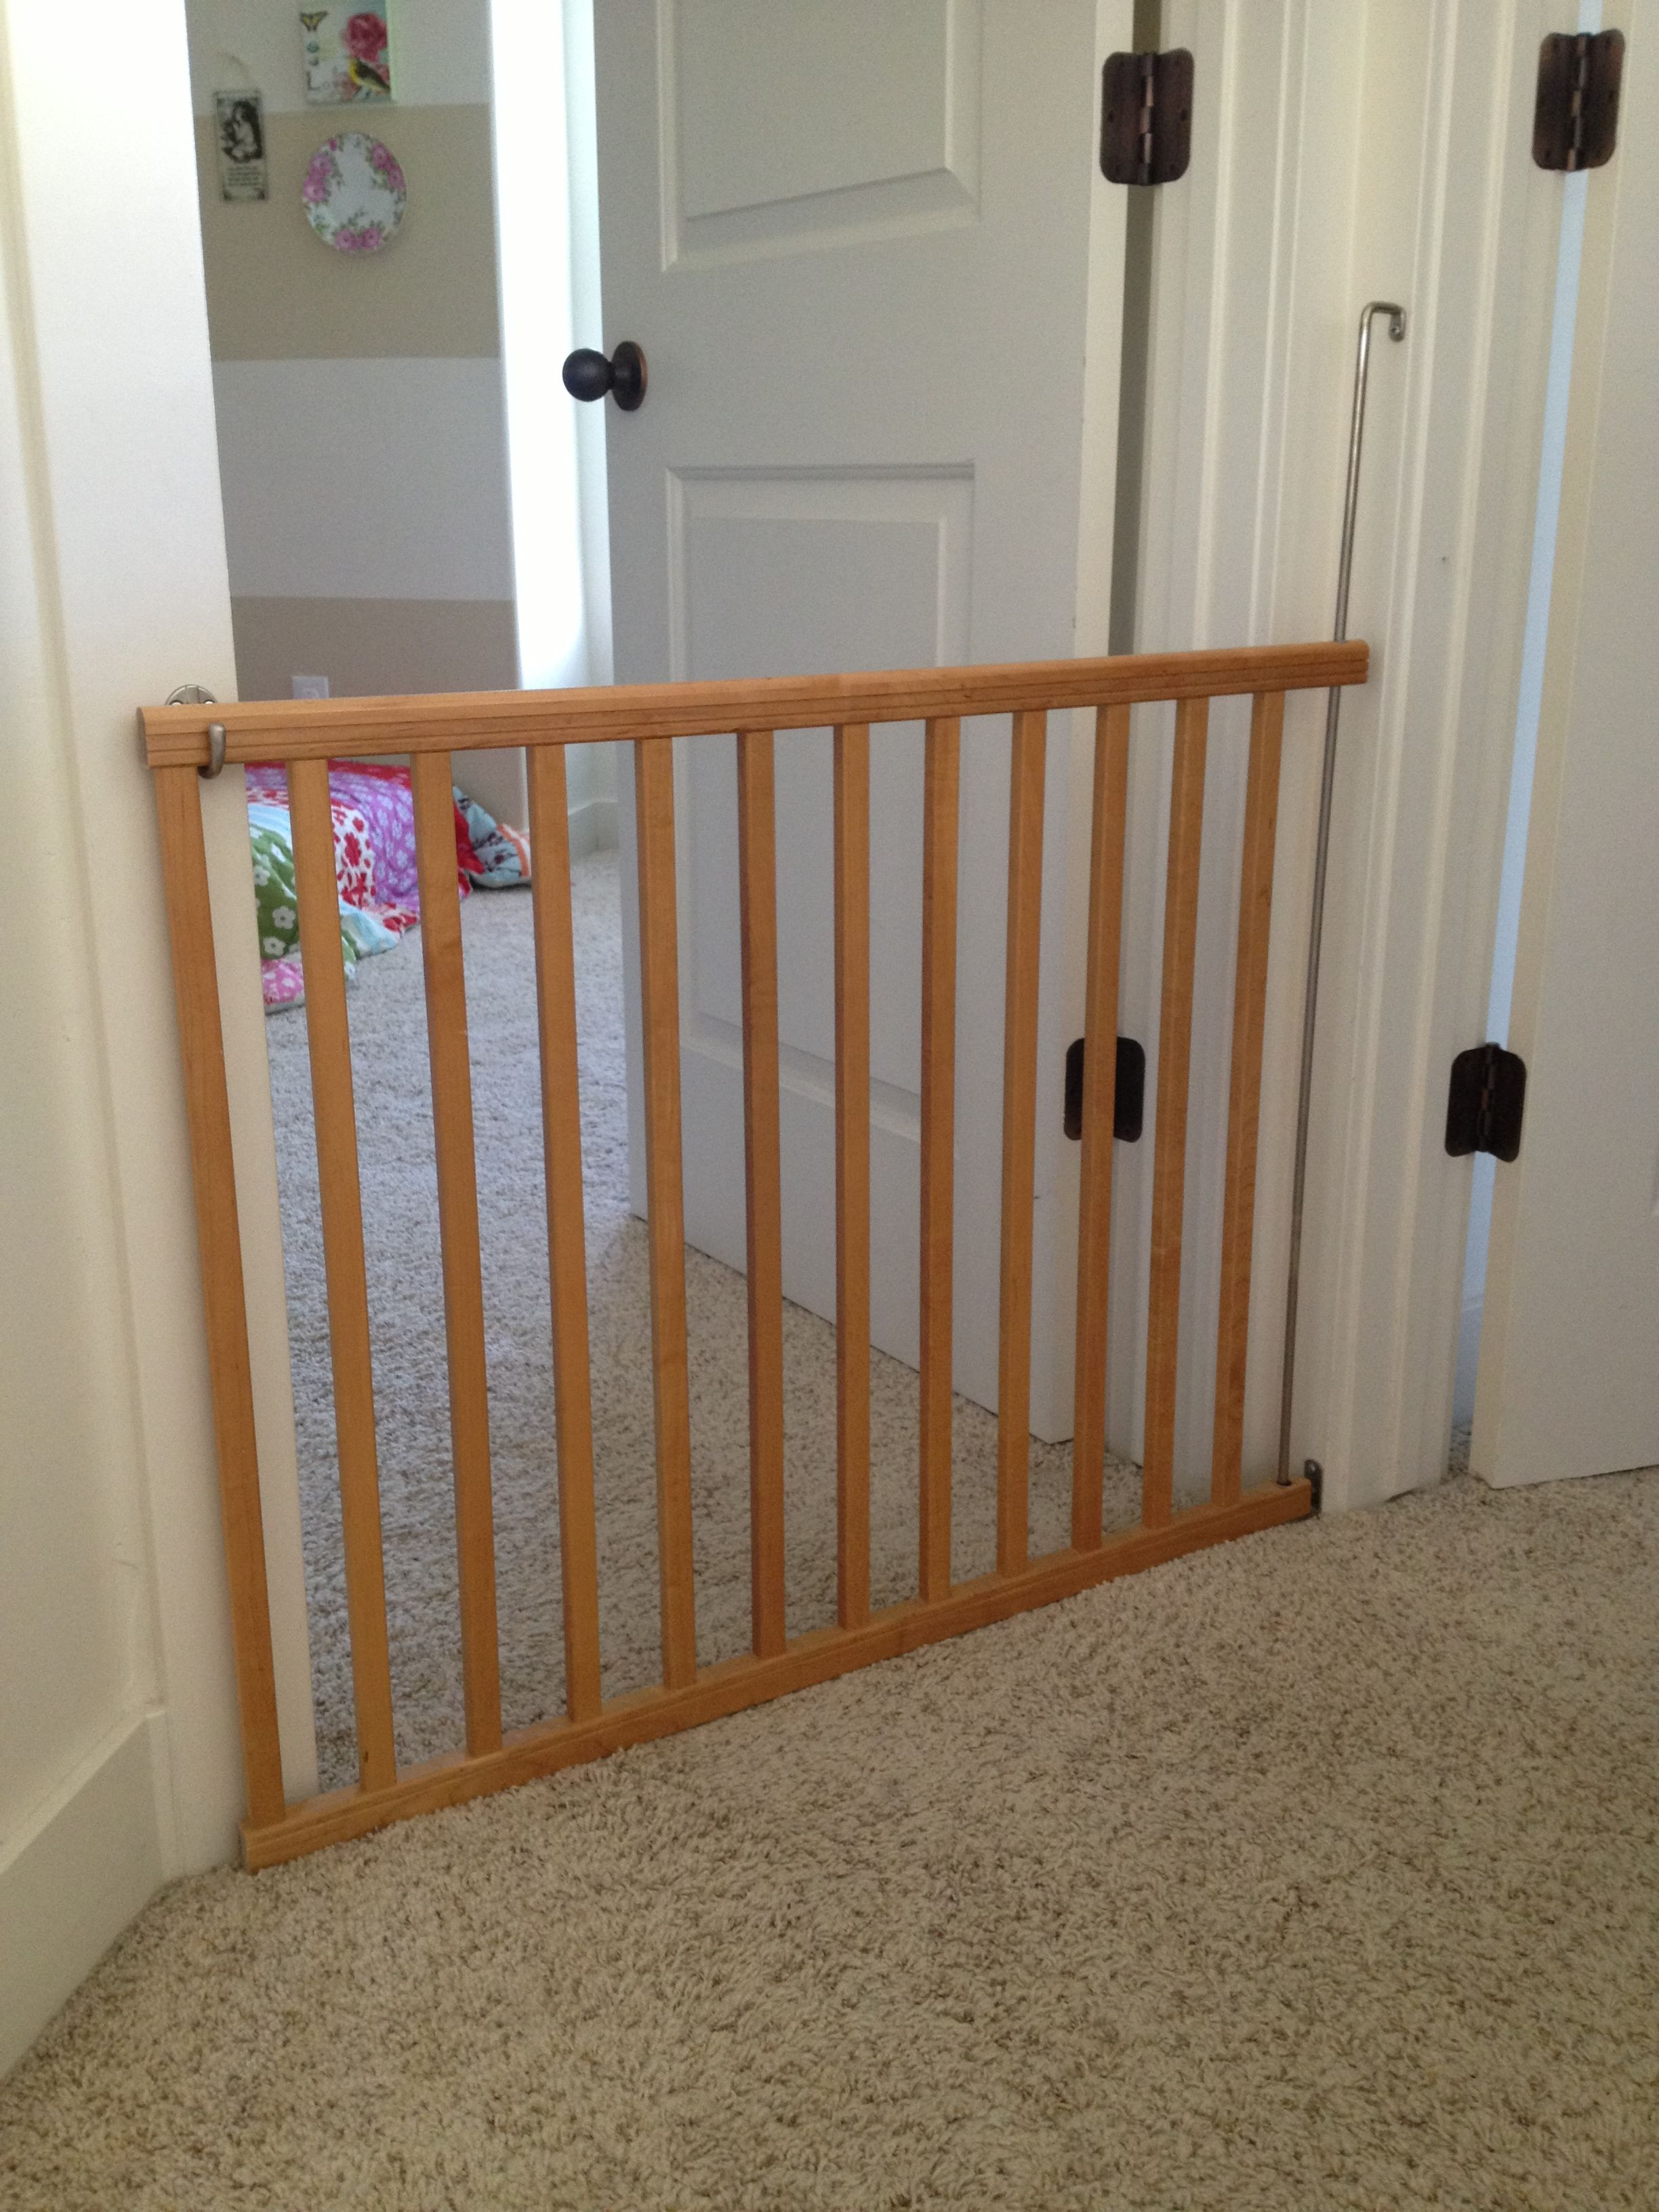 Pin By Ricci Brosseau On Kids Stuff Diy Baby Gate Diy Crib Cribs Repurpose